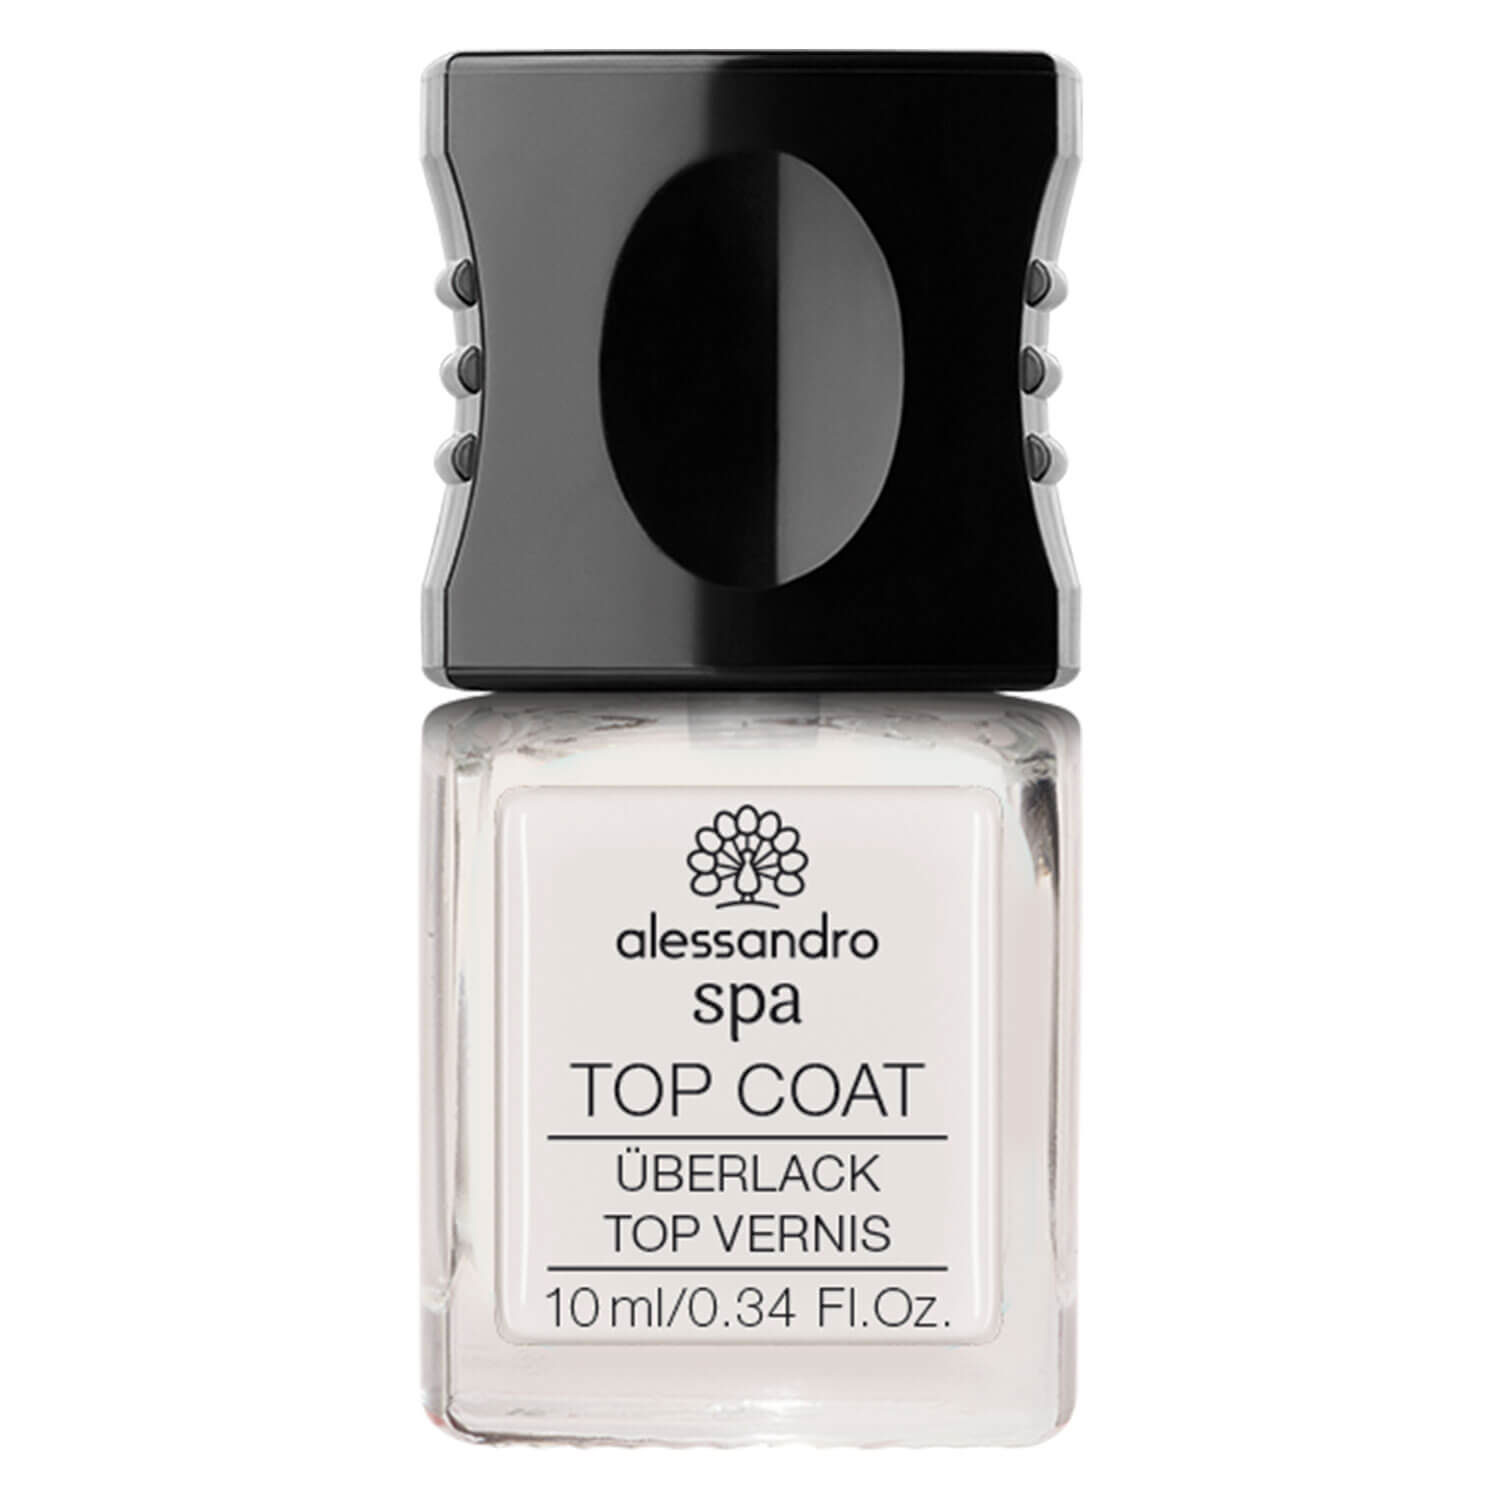 Alessandro Spa - Top Coat